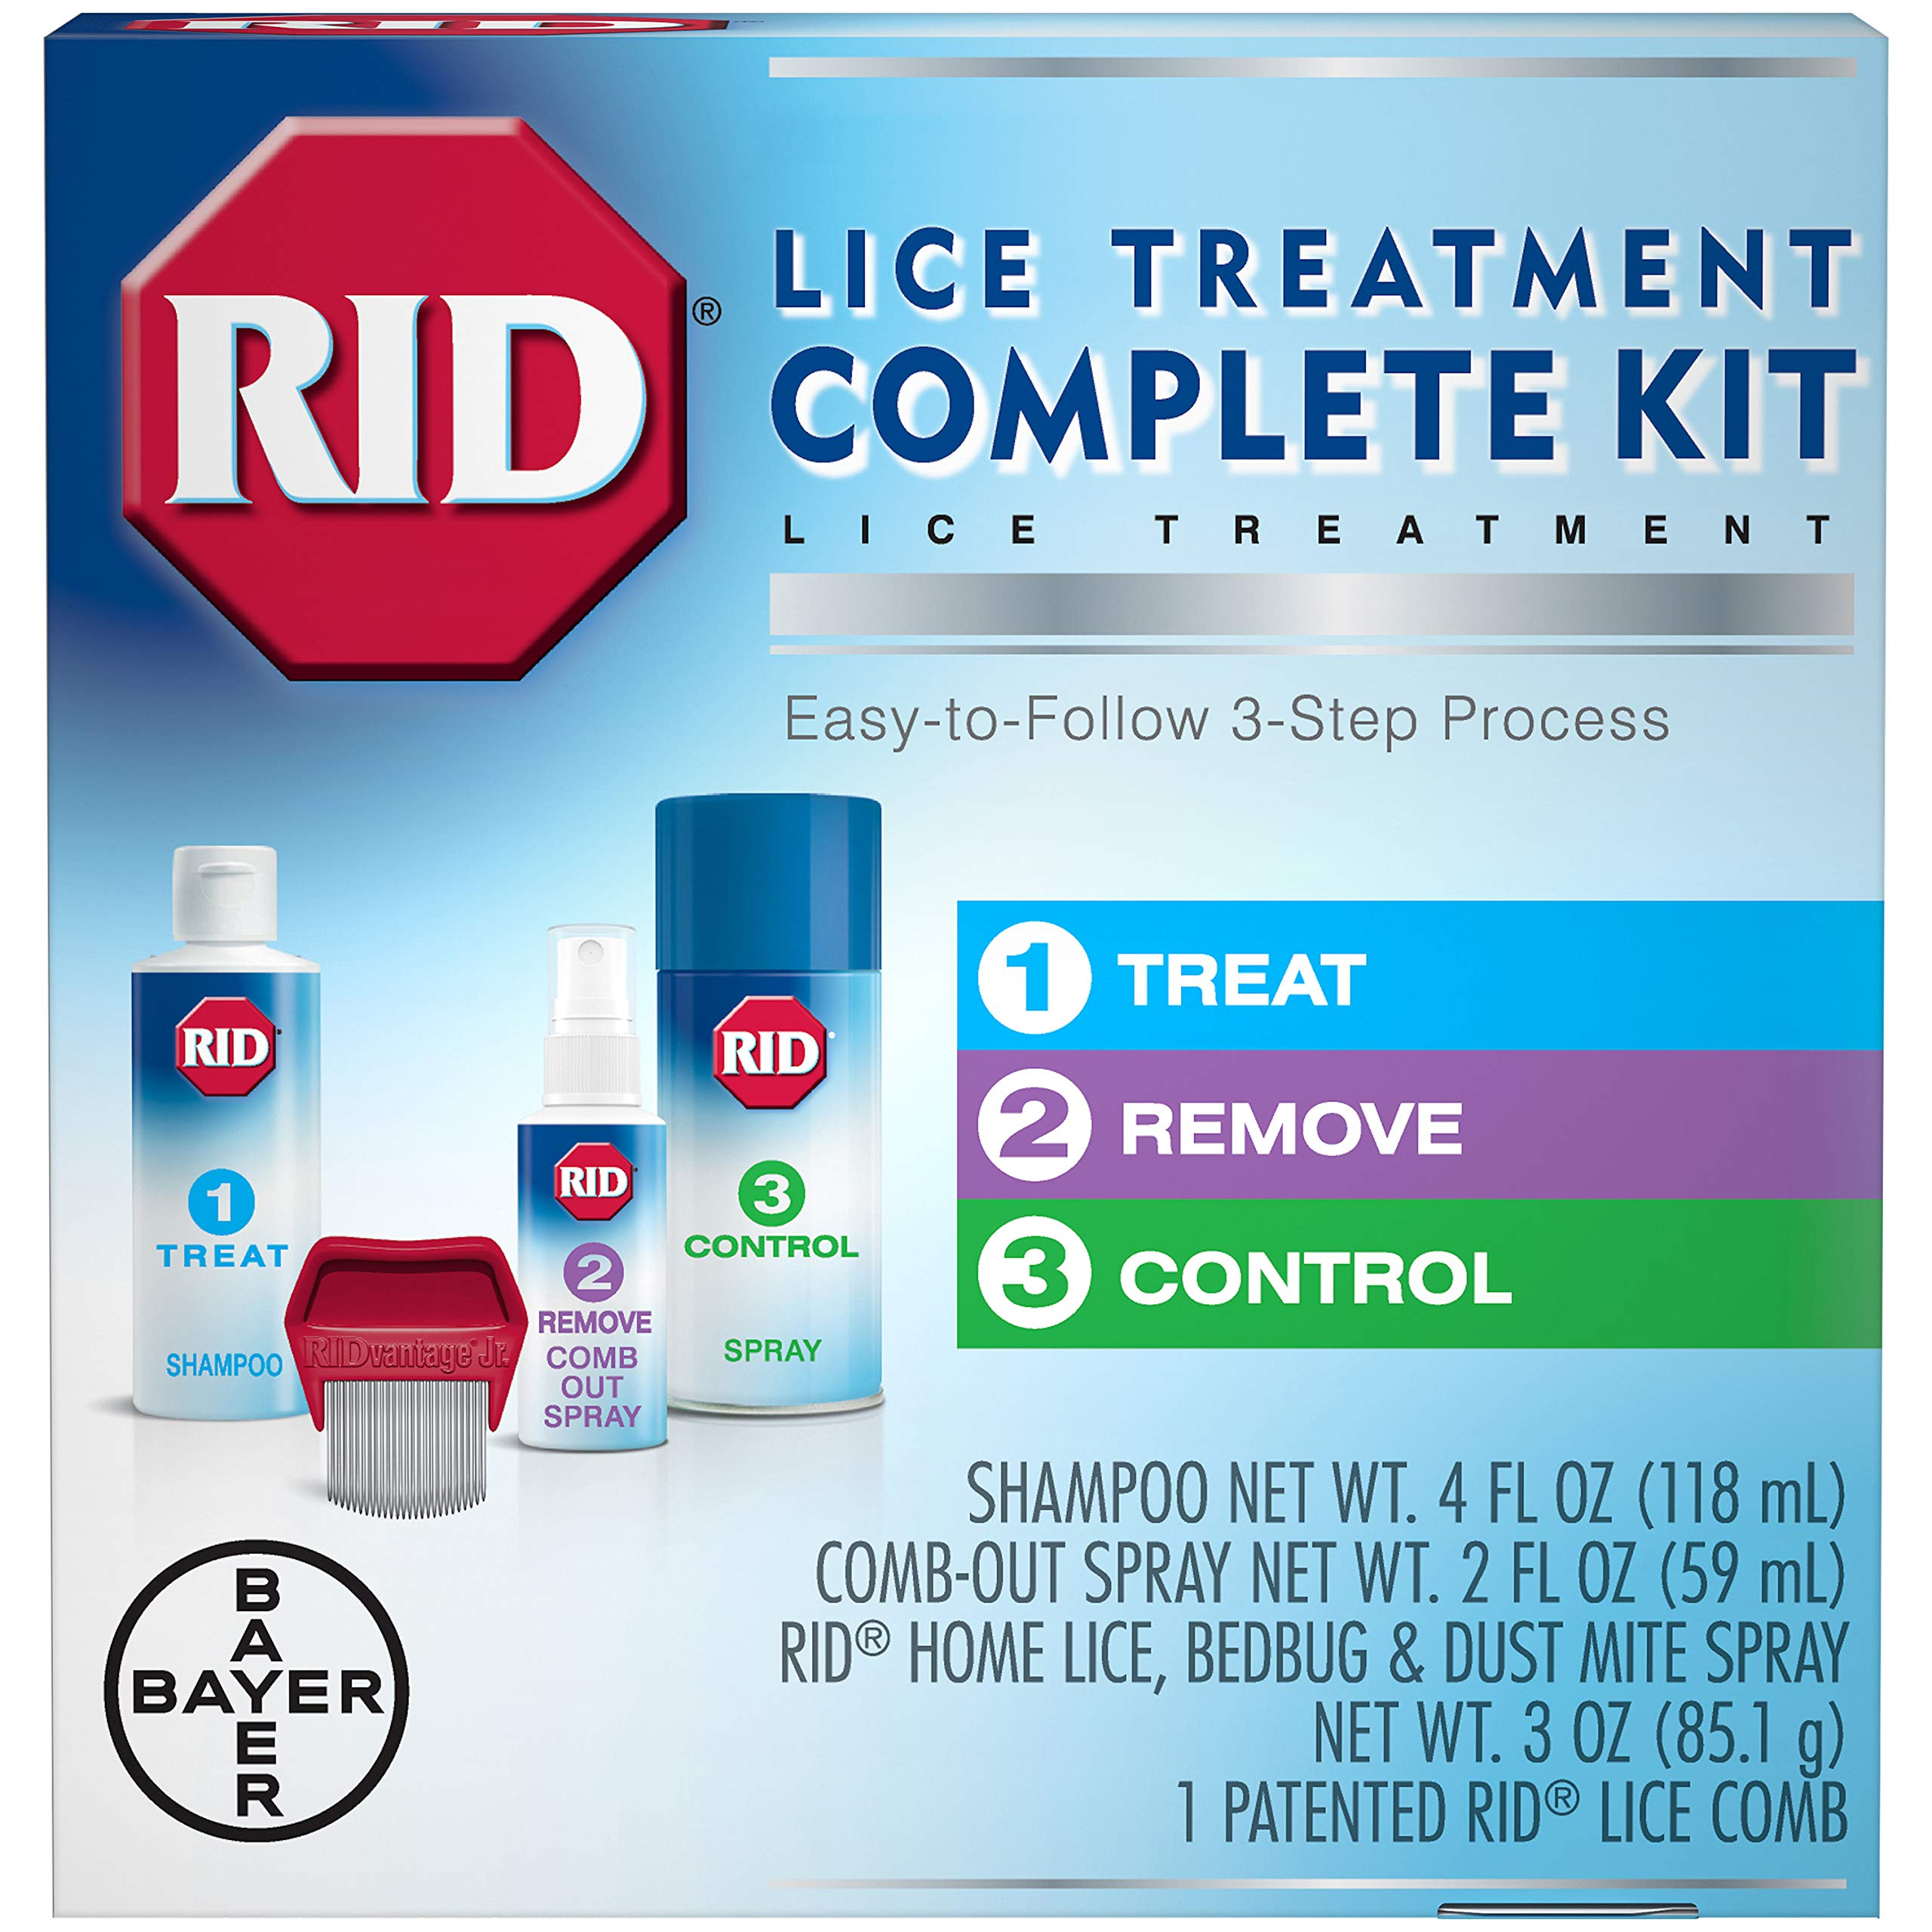 RIDLice Treatment Complete Kit, Includes 4 Fluid Ounces RID Lice Killing Shampoo, 2 Fluid Ounces Lice and Egg Comb-Out Spray, Lice Comb, and 3 Ounces RID Home Lice, Bedbug & Dust Mite Home Spray by Rid